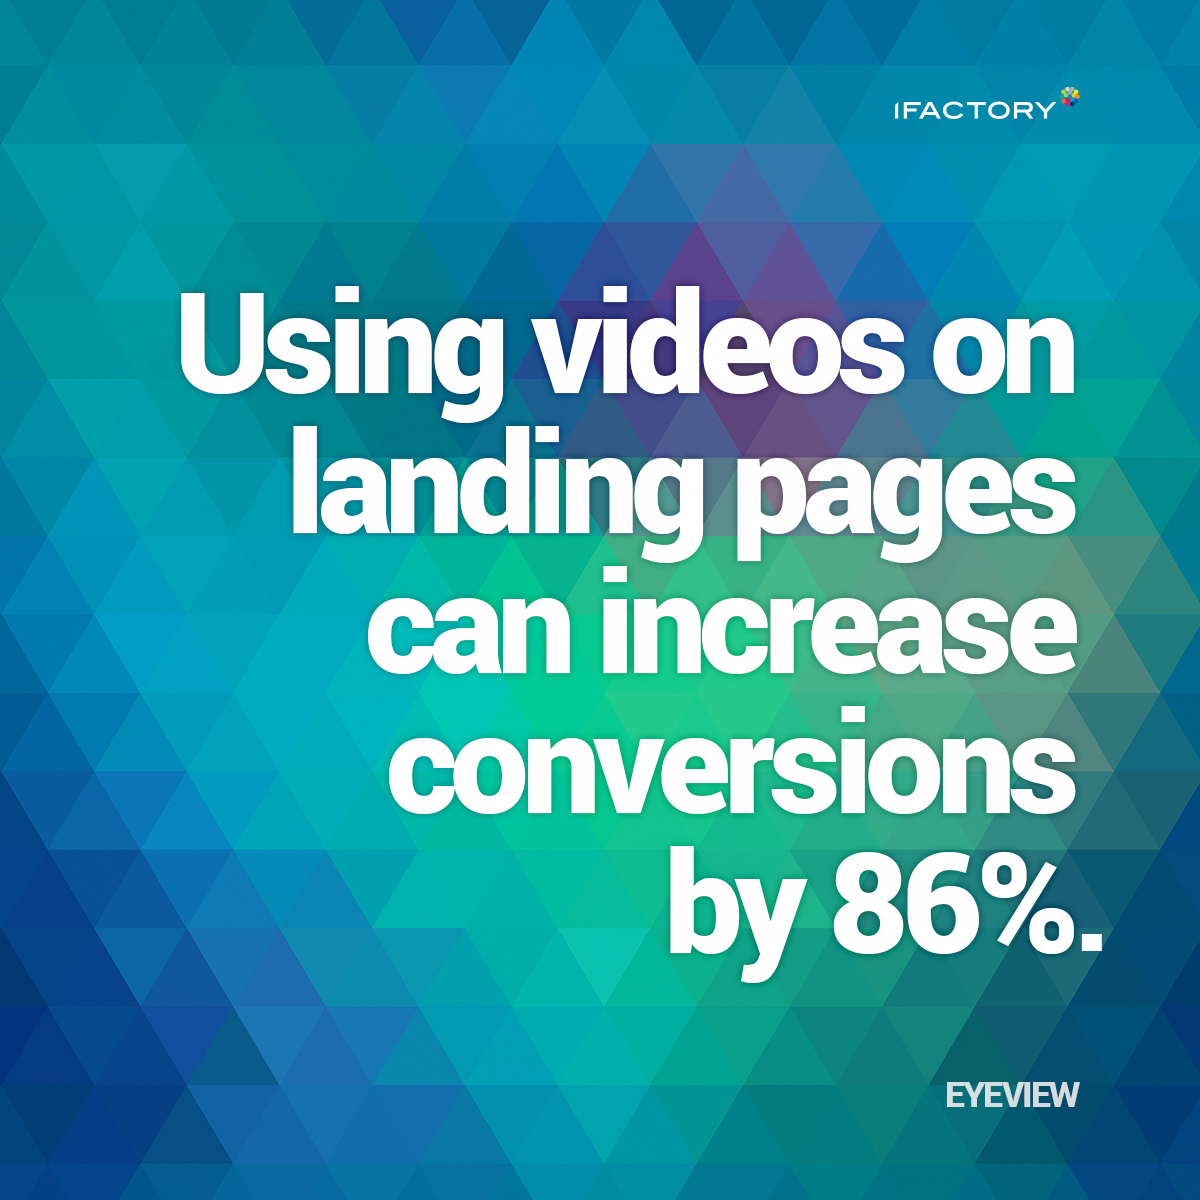 Using videos on landing pages can increase conversions by 86%